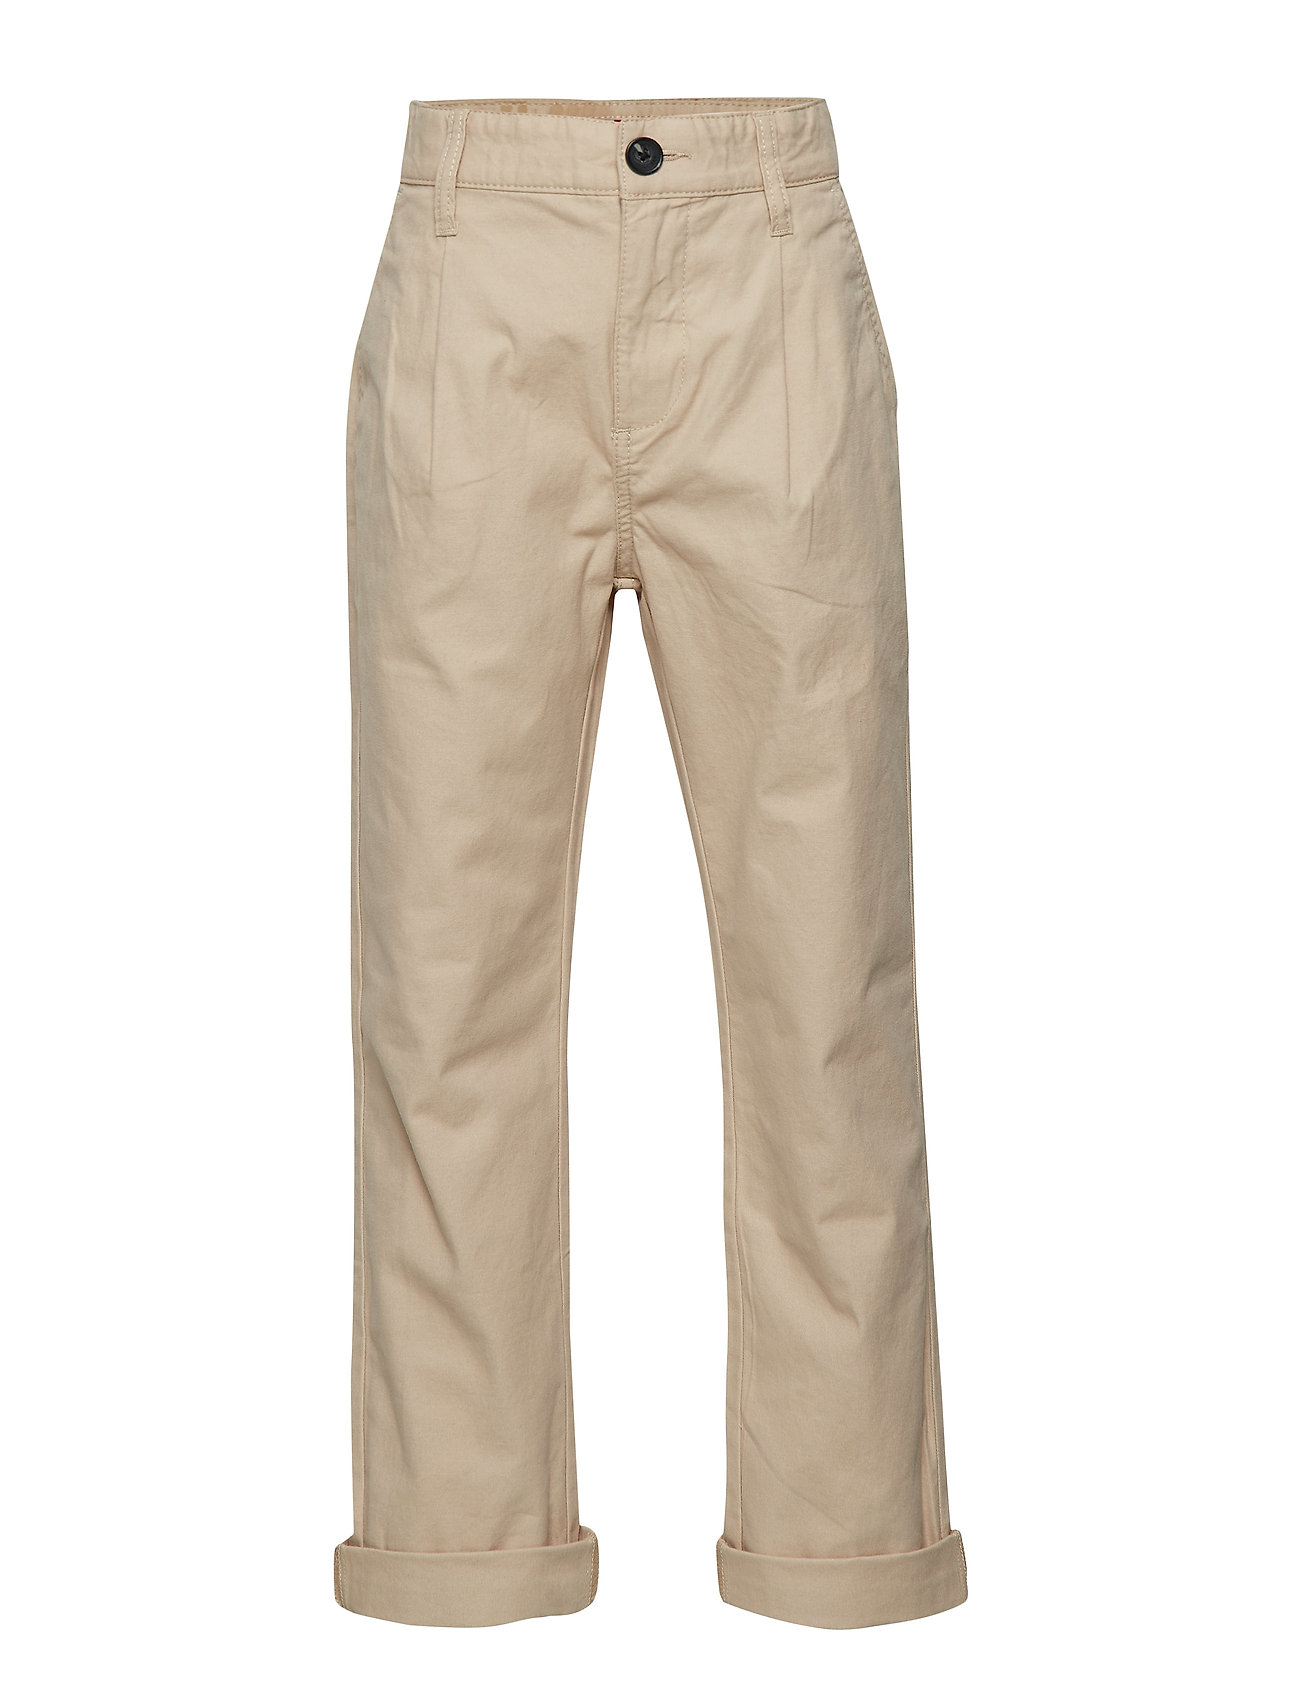 Tommy Hilfiger RECYCLED WIDE LEG CHINO - WHITE PEPPER